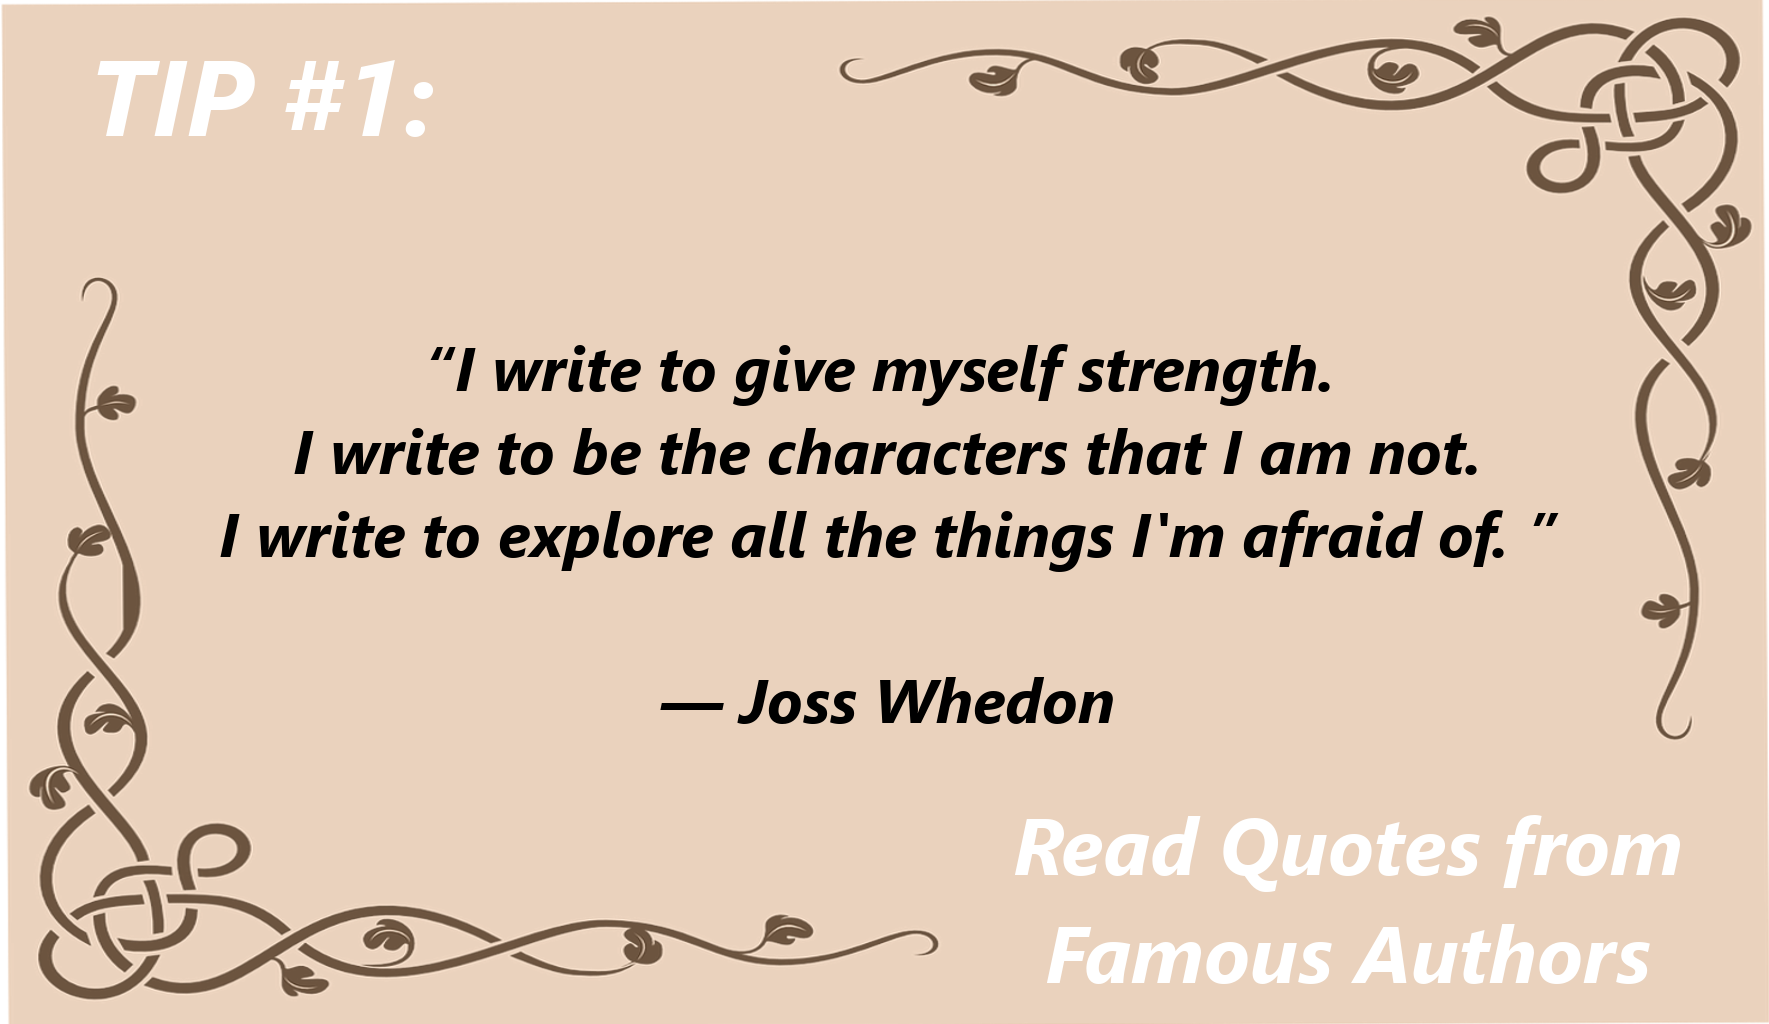 read quotes from famous authors for writing inspiration [Joss Whedon]